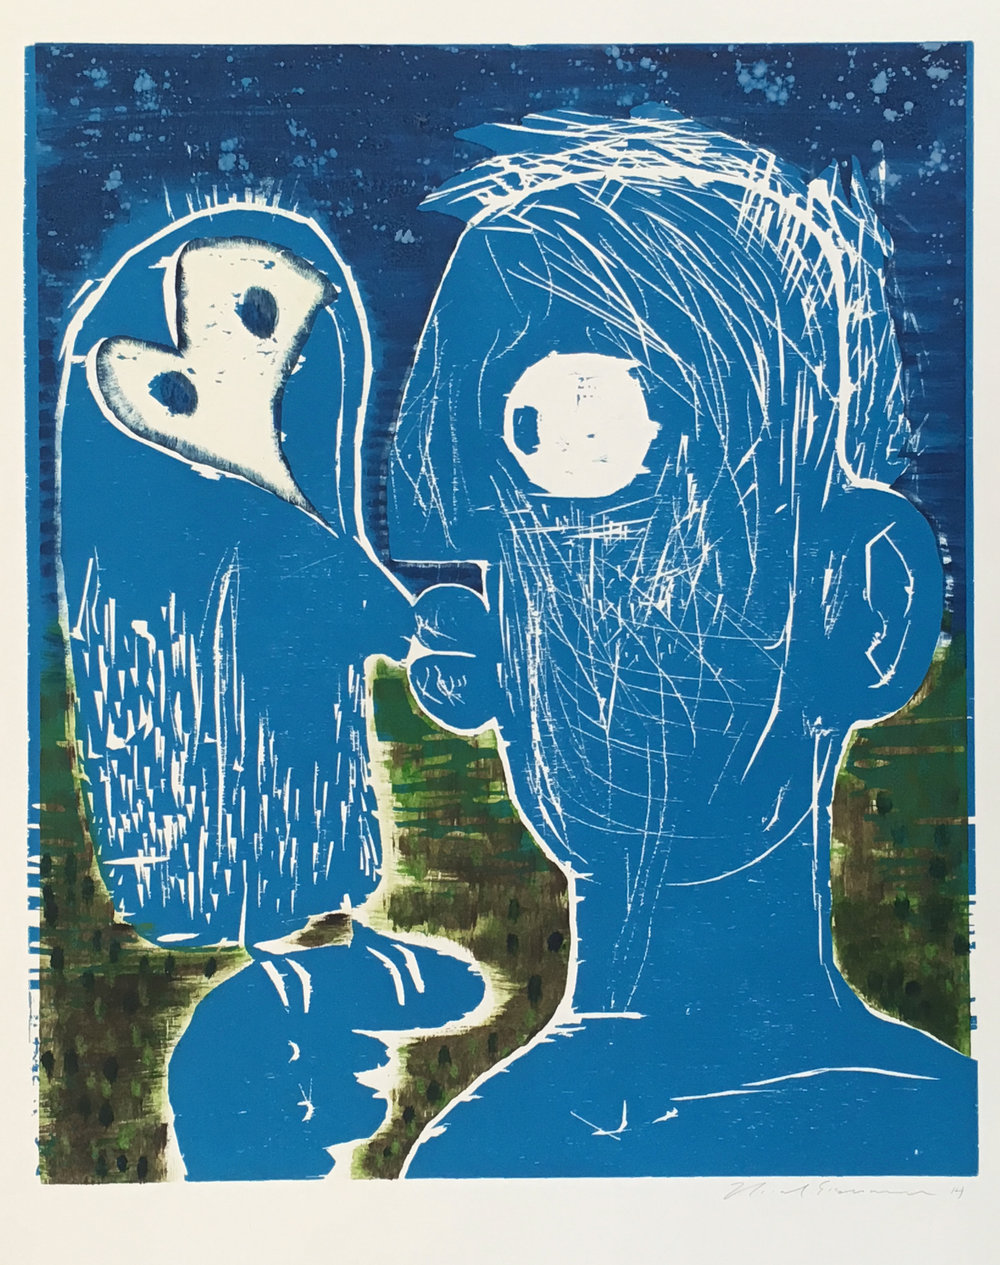 Untitled (IV) , 2014 Monoprint Image size: 23 5/8 x 19 3/4 inches Paper size: 27 5/8 x 23 5/8 inches Series of 8